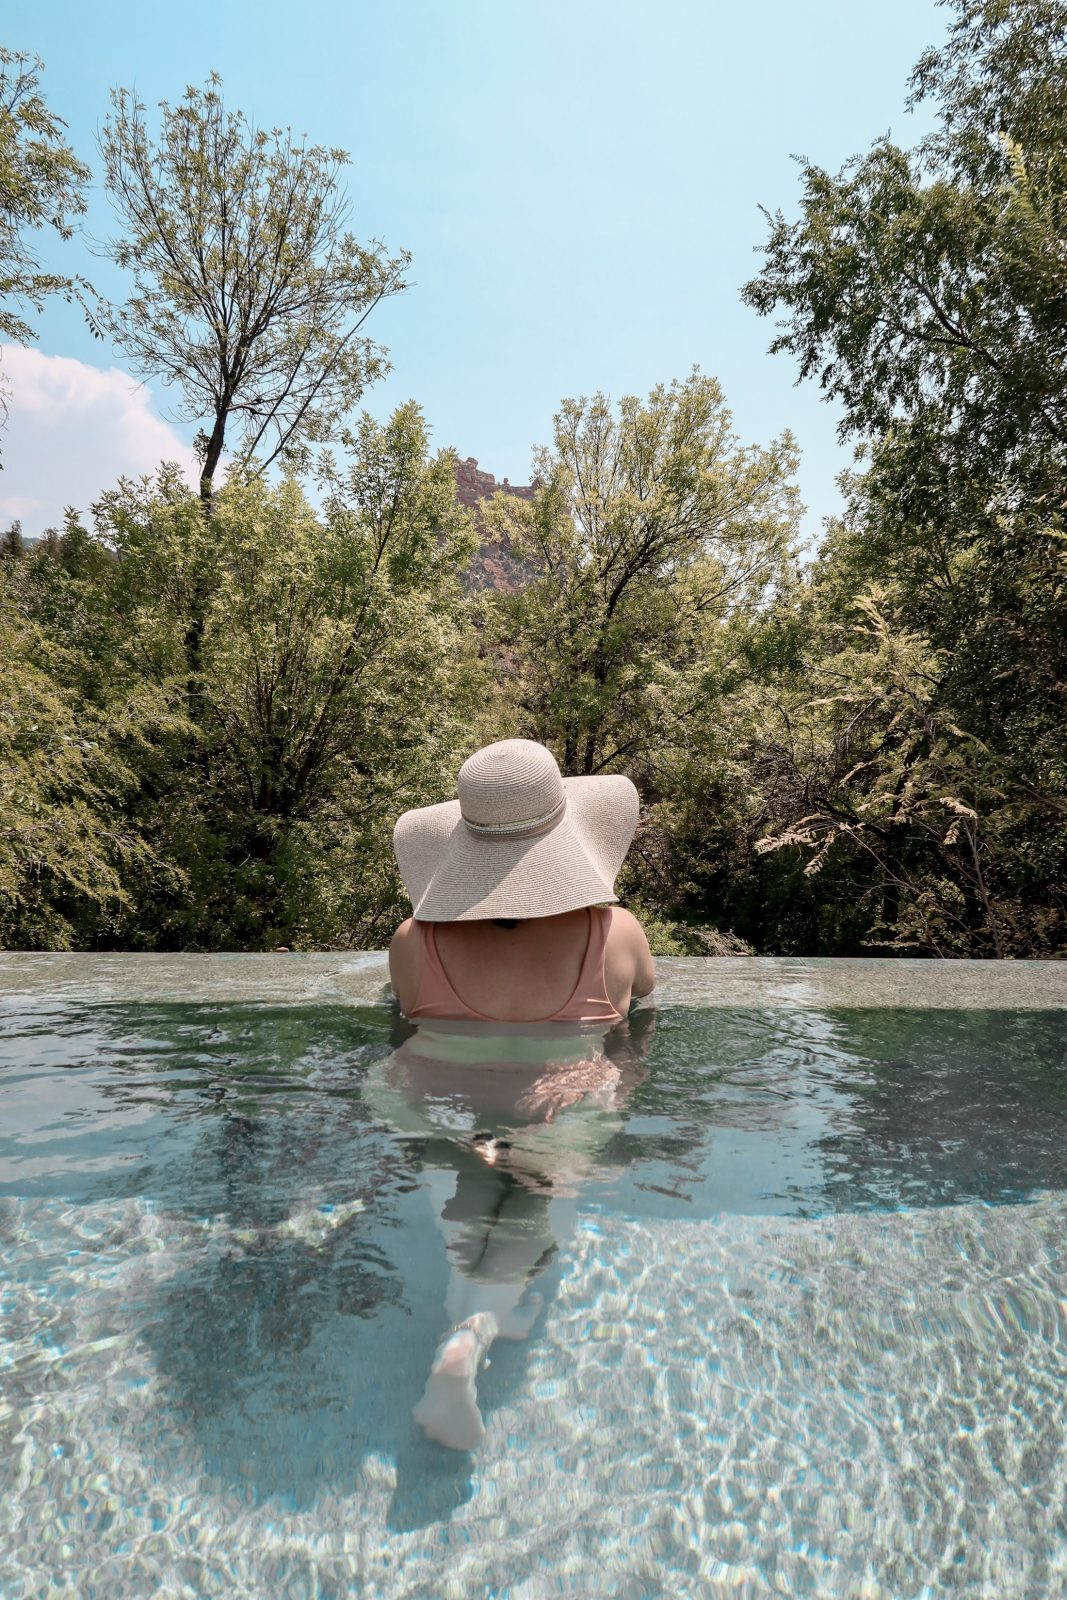 This is a photo of Adaleta Avdic in the Amara Resort & Spa pool, facing the mountains of Sedona in the background.